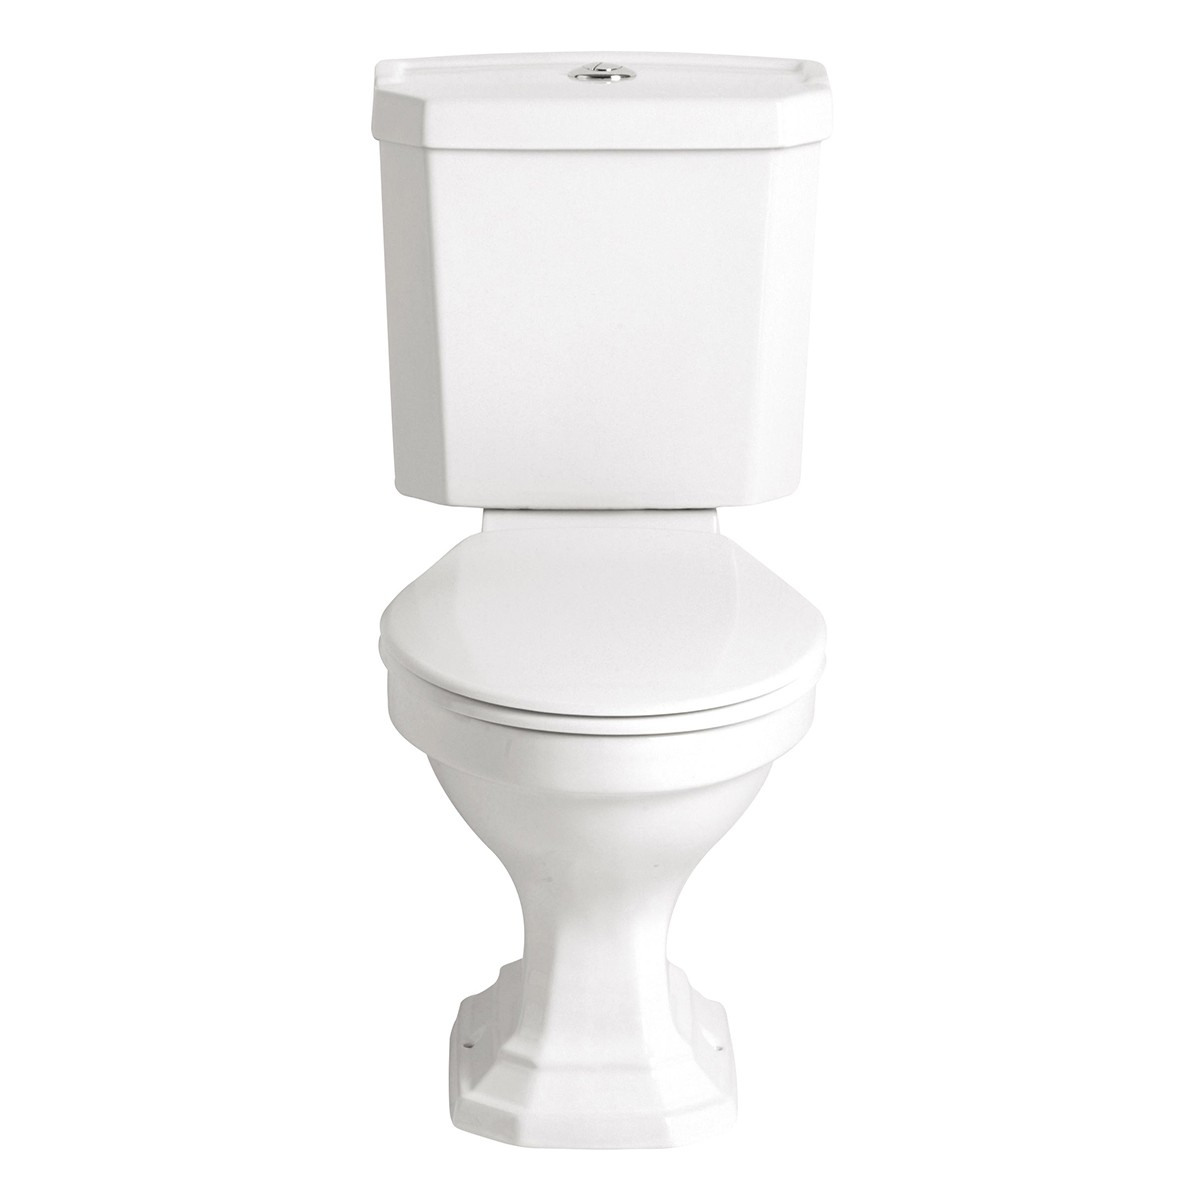 Heritage granley granley deco close coupled wc leigh plumbing merchants - Deco wc blauw ...